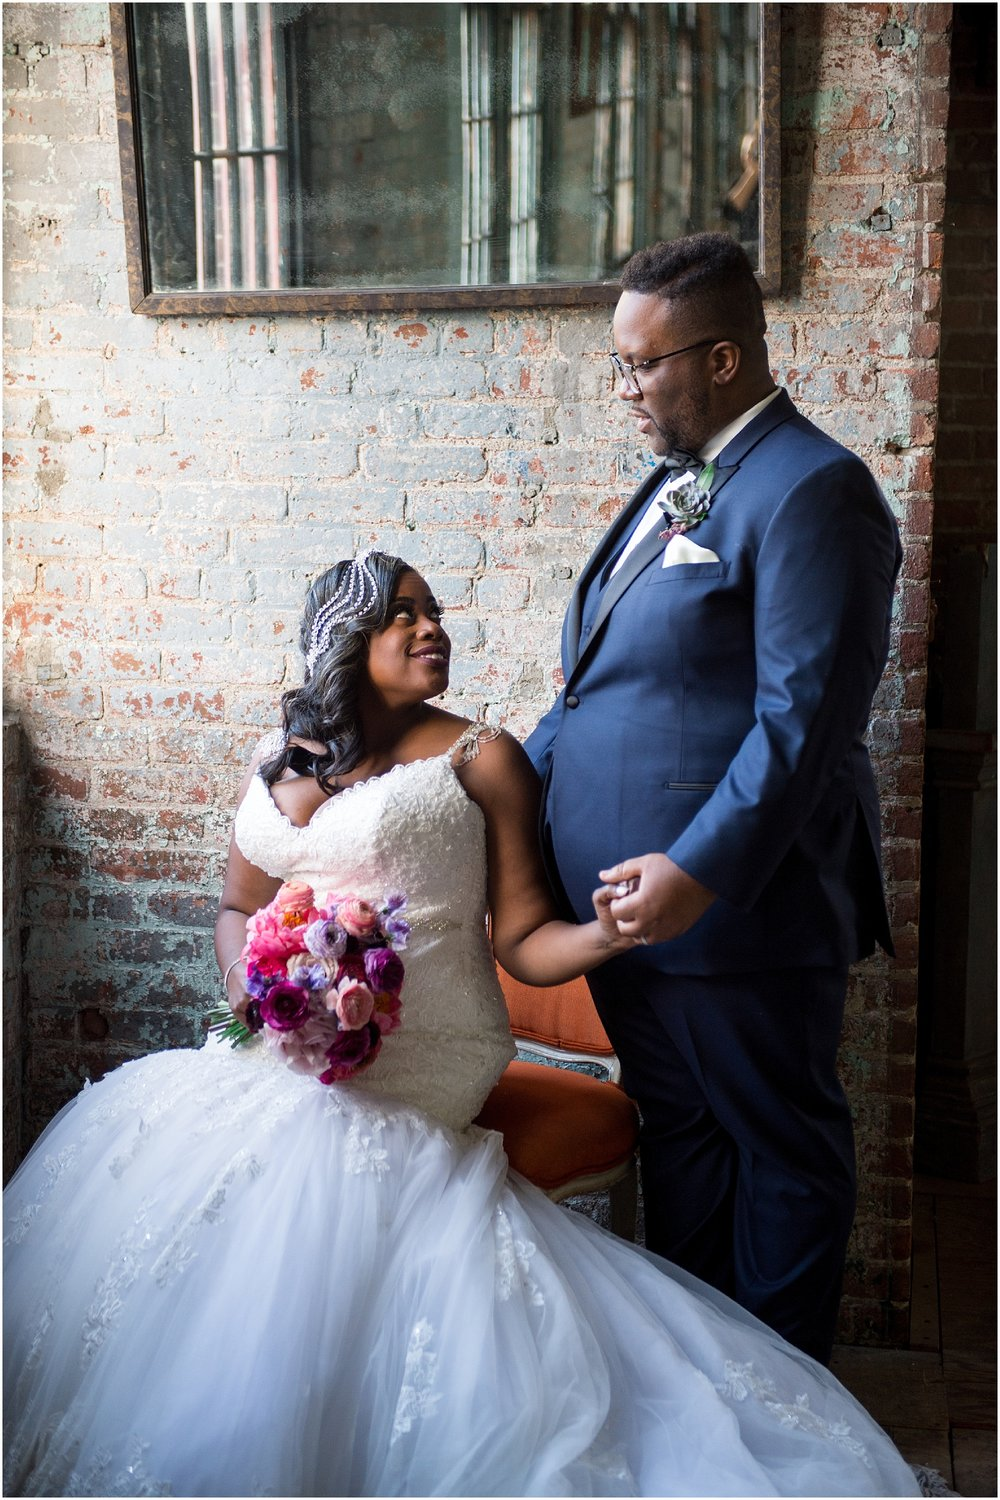 Sandrine and Eric Metropolitan Building Wedding Photography by Leandra_0054.jpg